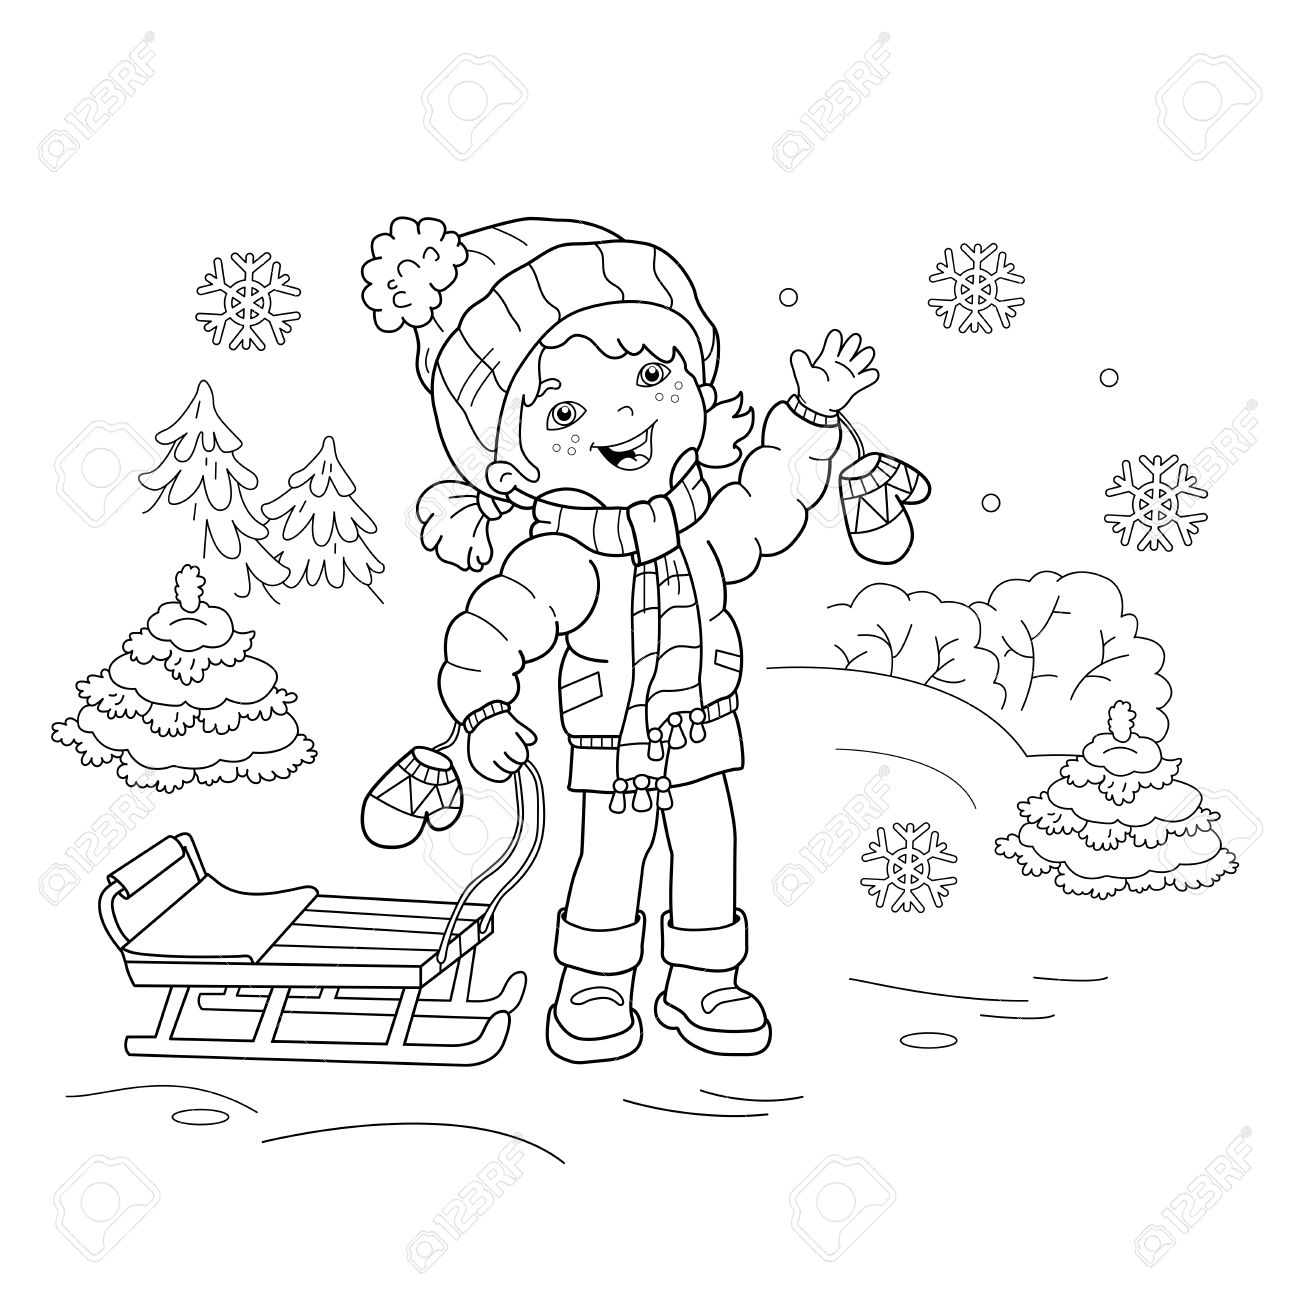 Coloring Page Outline Of Cartoon Girl With Sled. Winter. Coloring ...